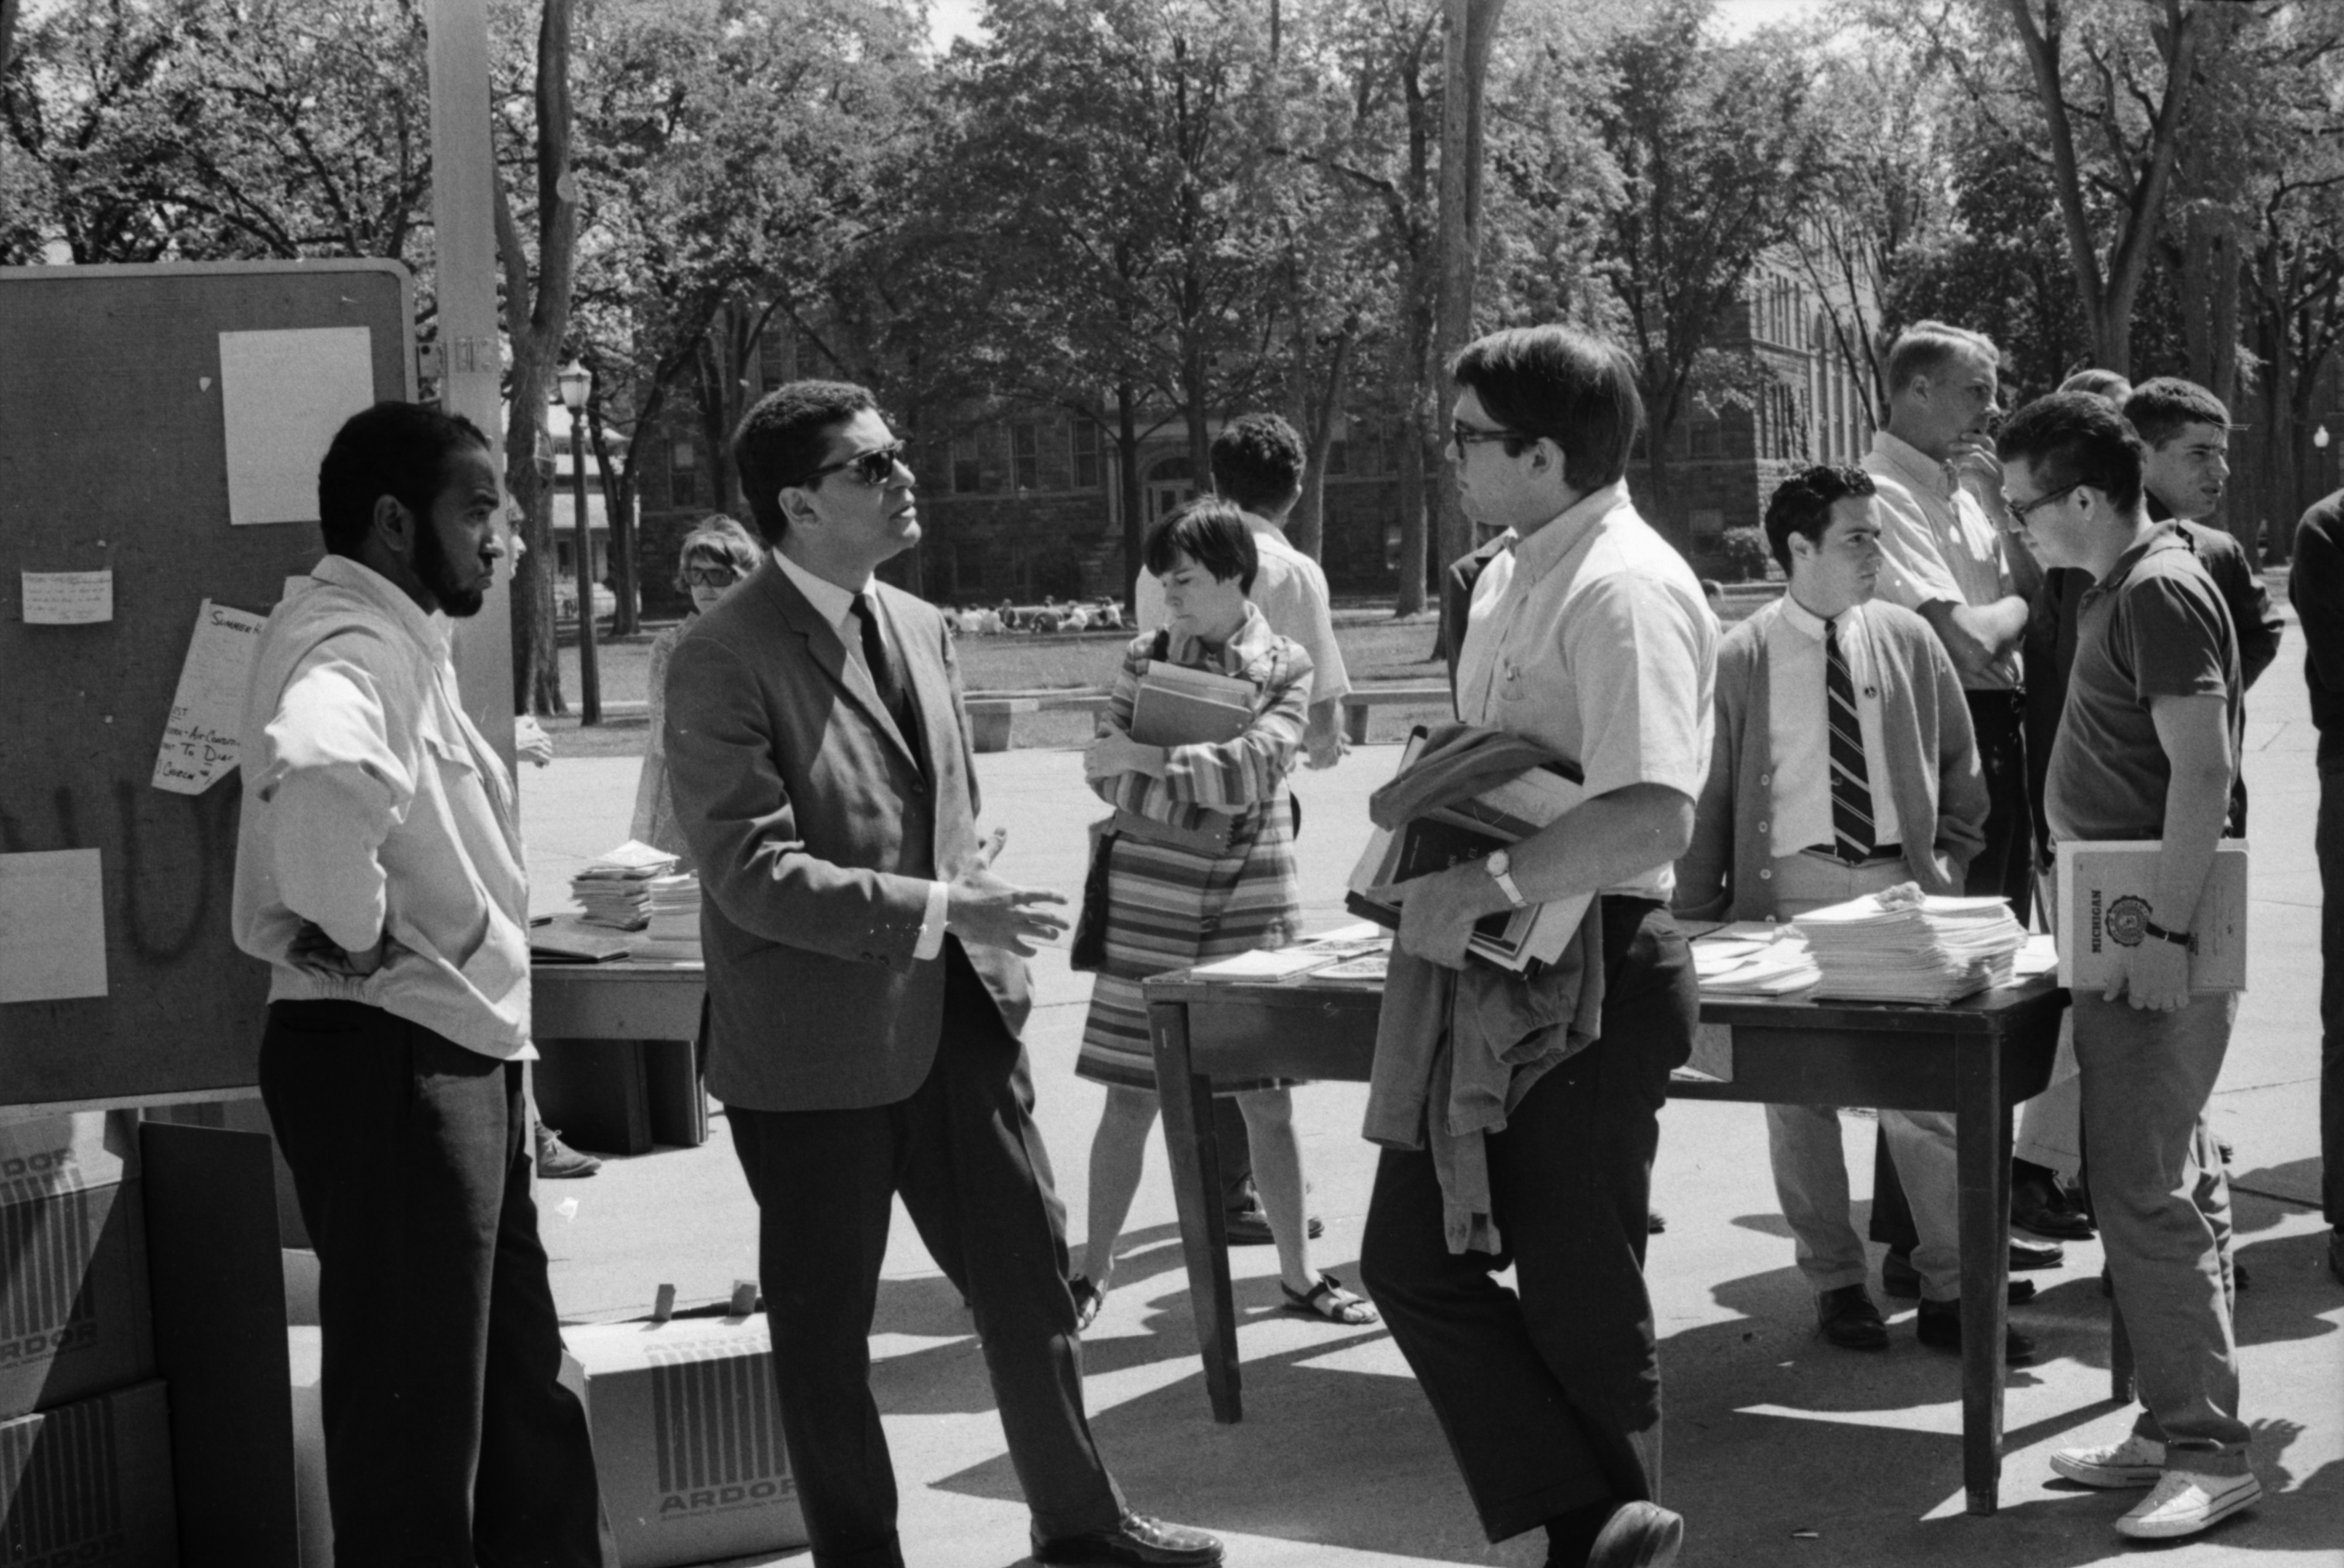 Arab Student Association Teach-In, June 1967 image